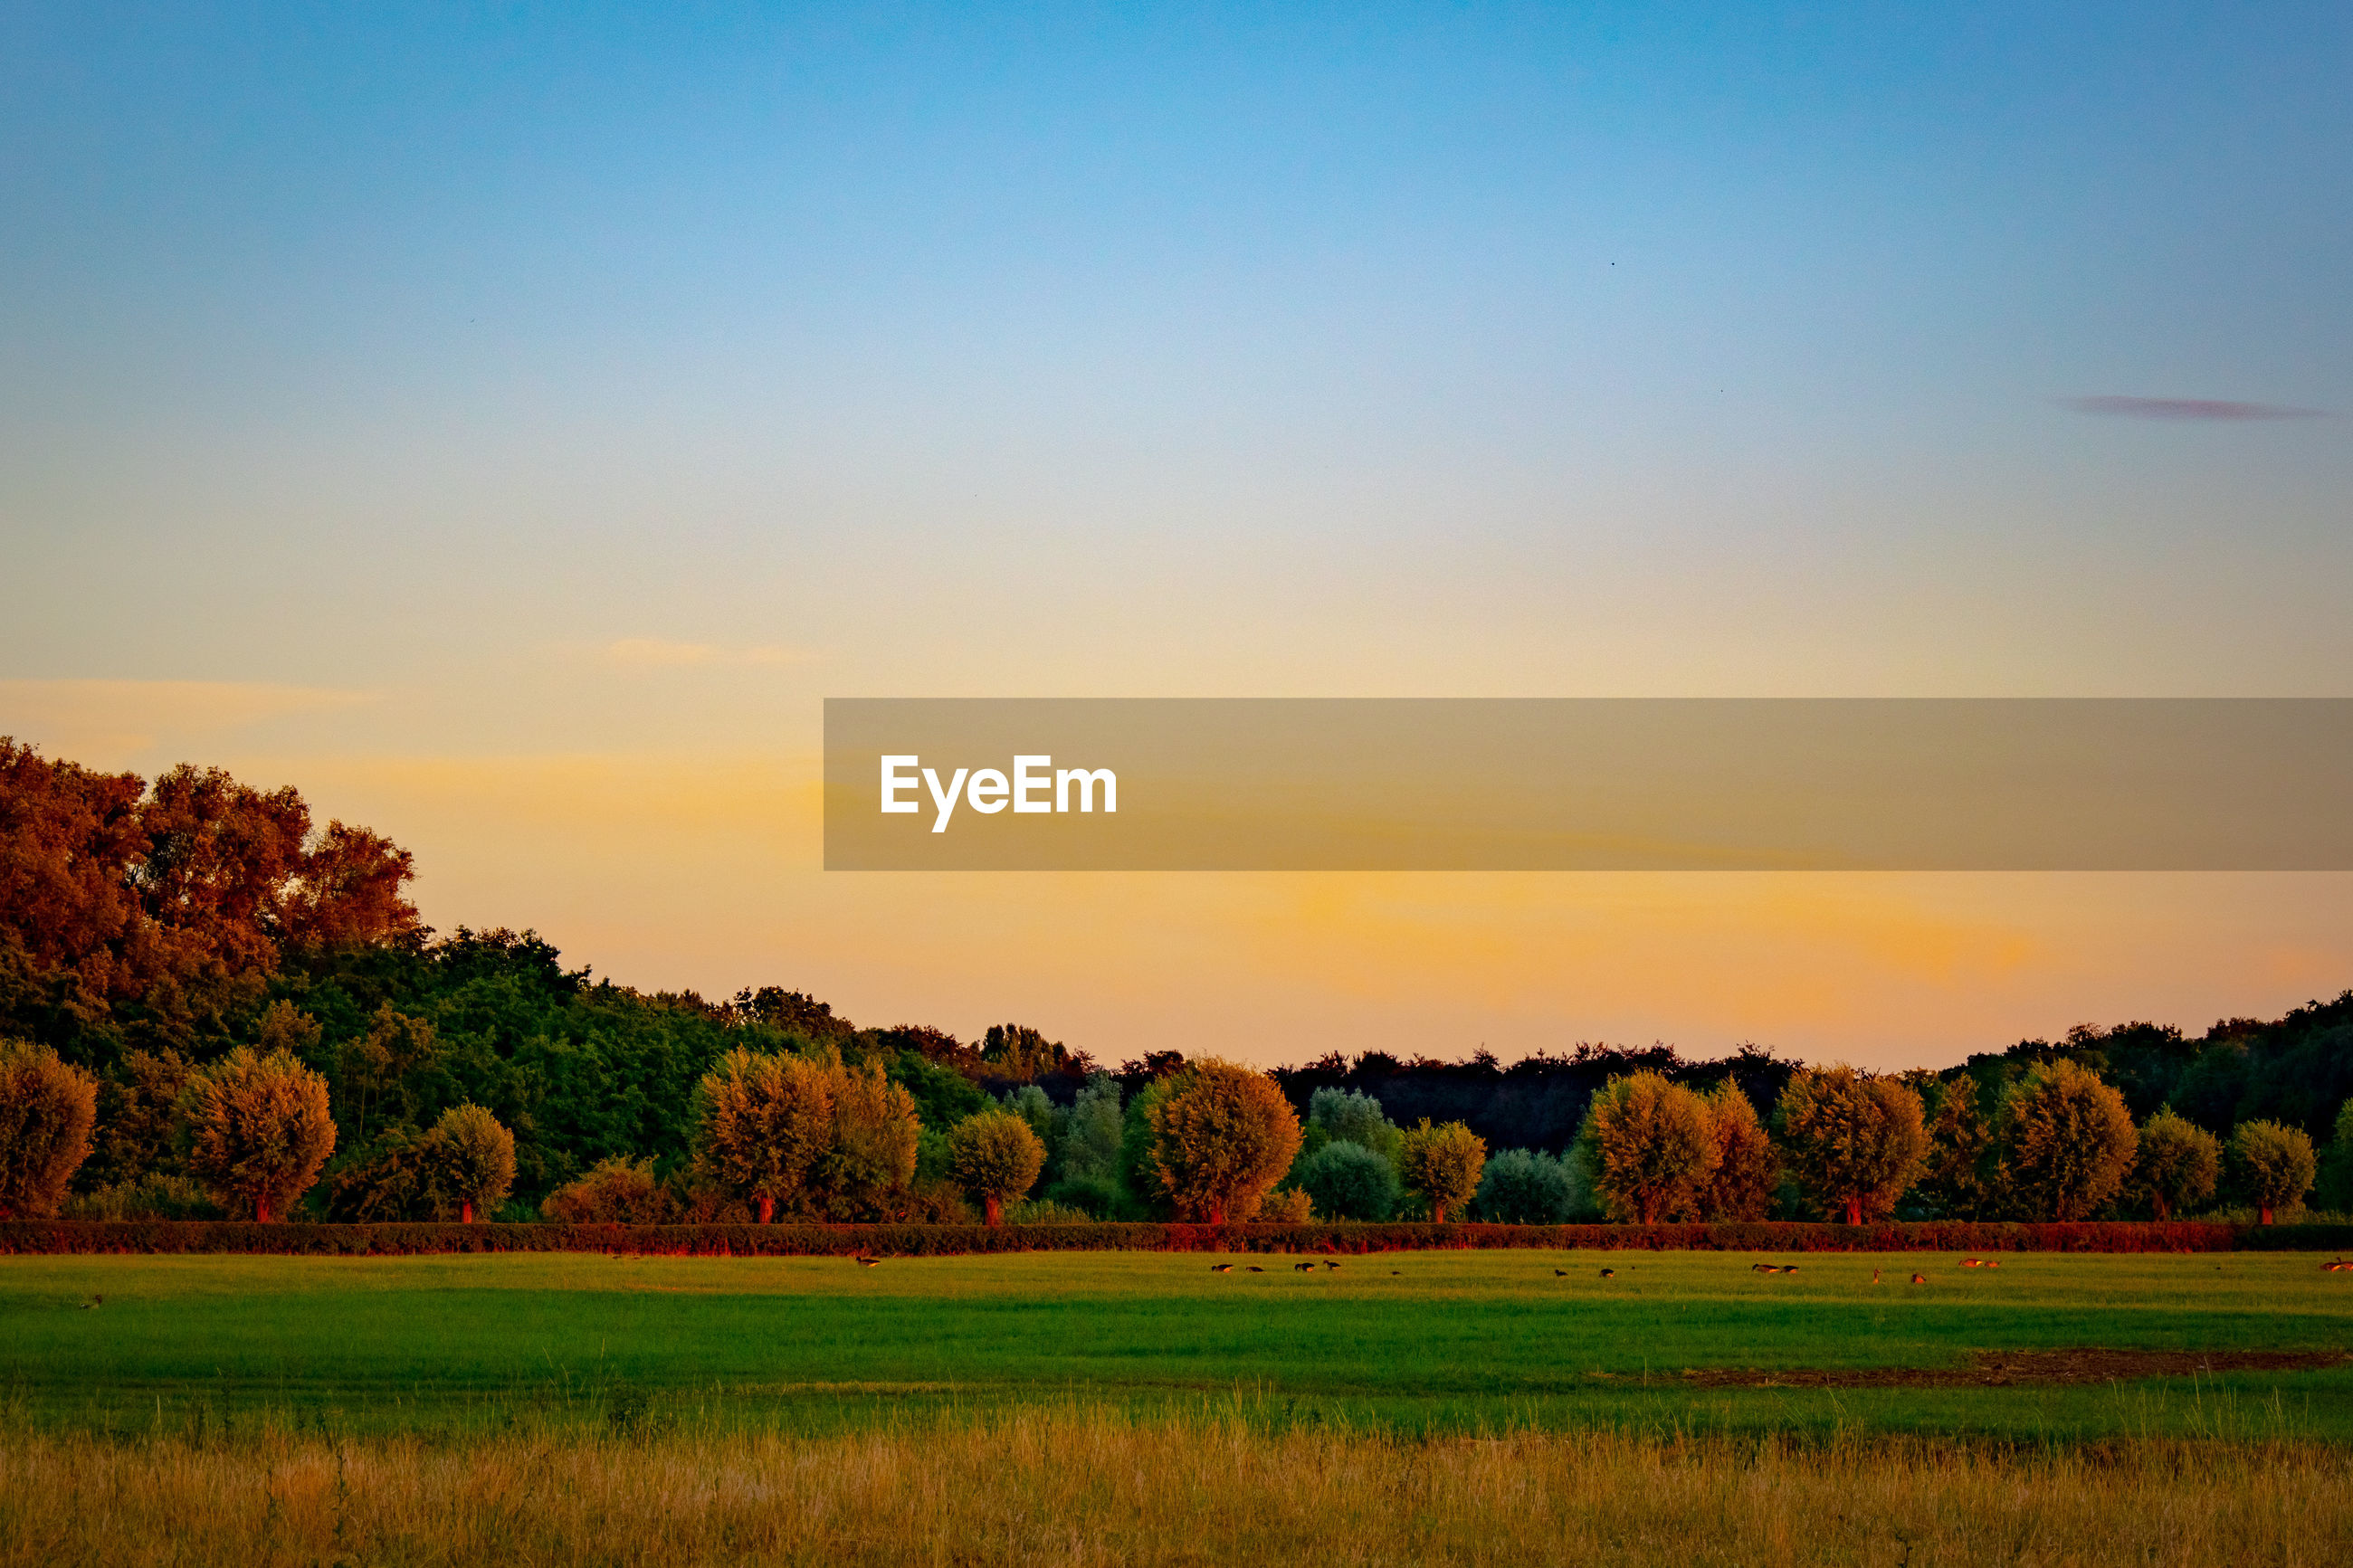 SCENIC VIEW OF TREES ON FIELD AGAINST SKY DURING SUNSET